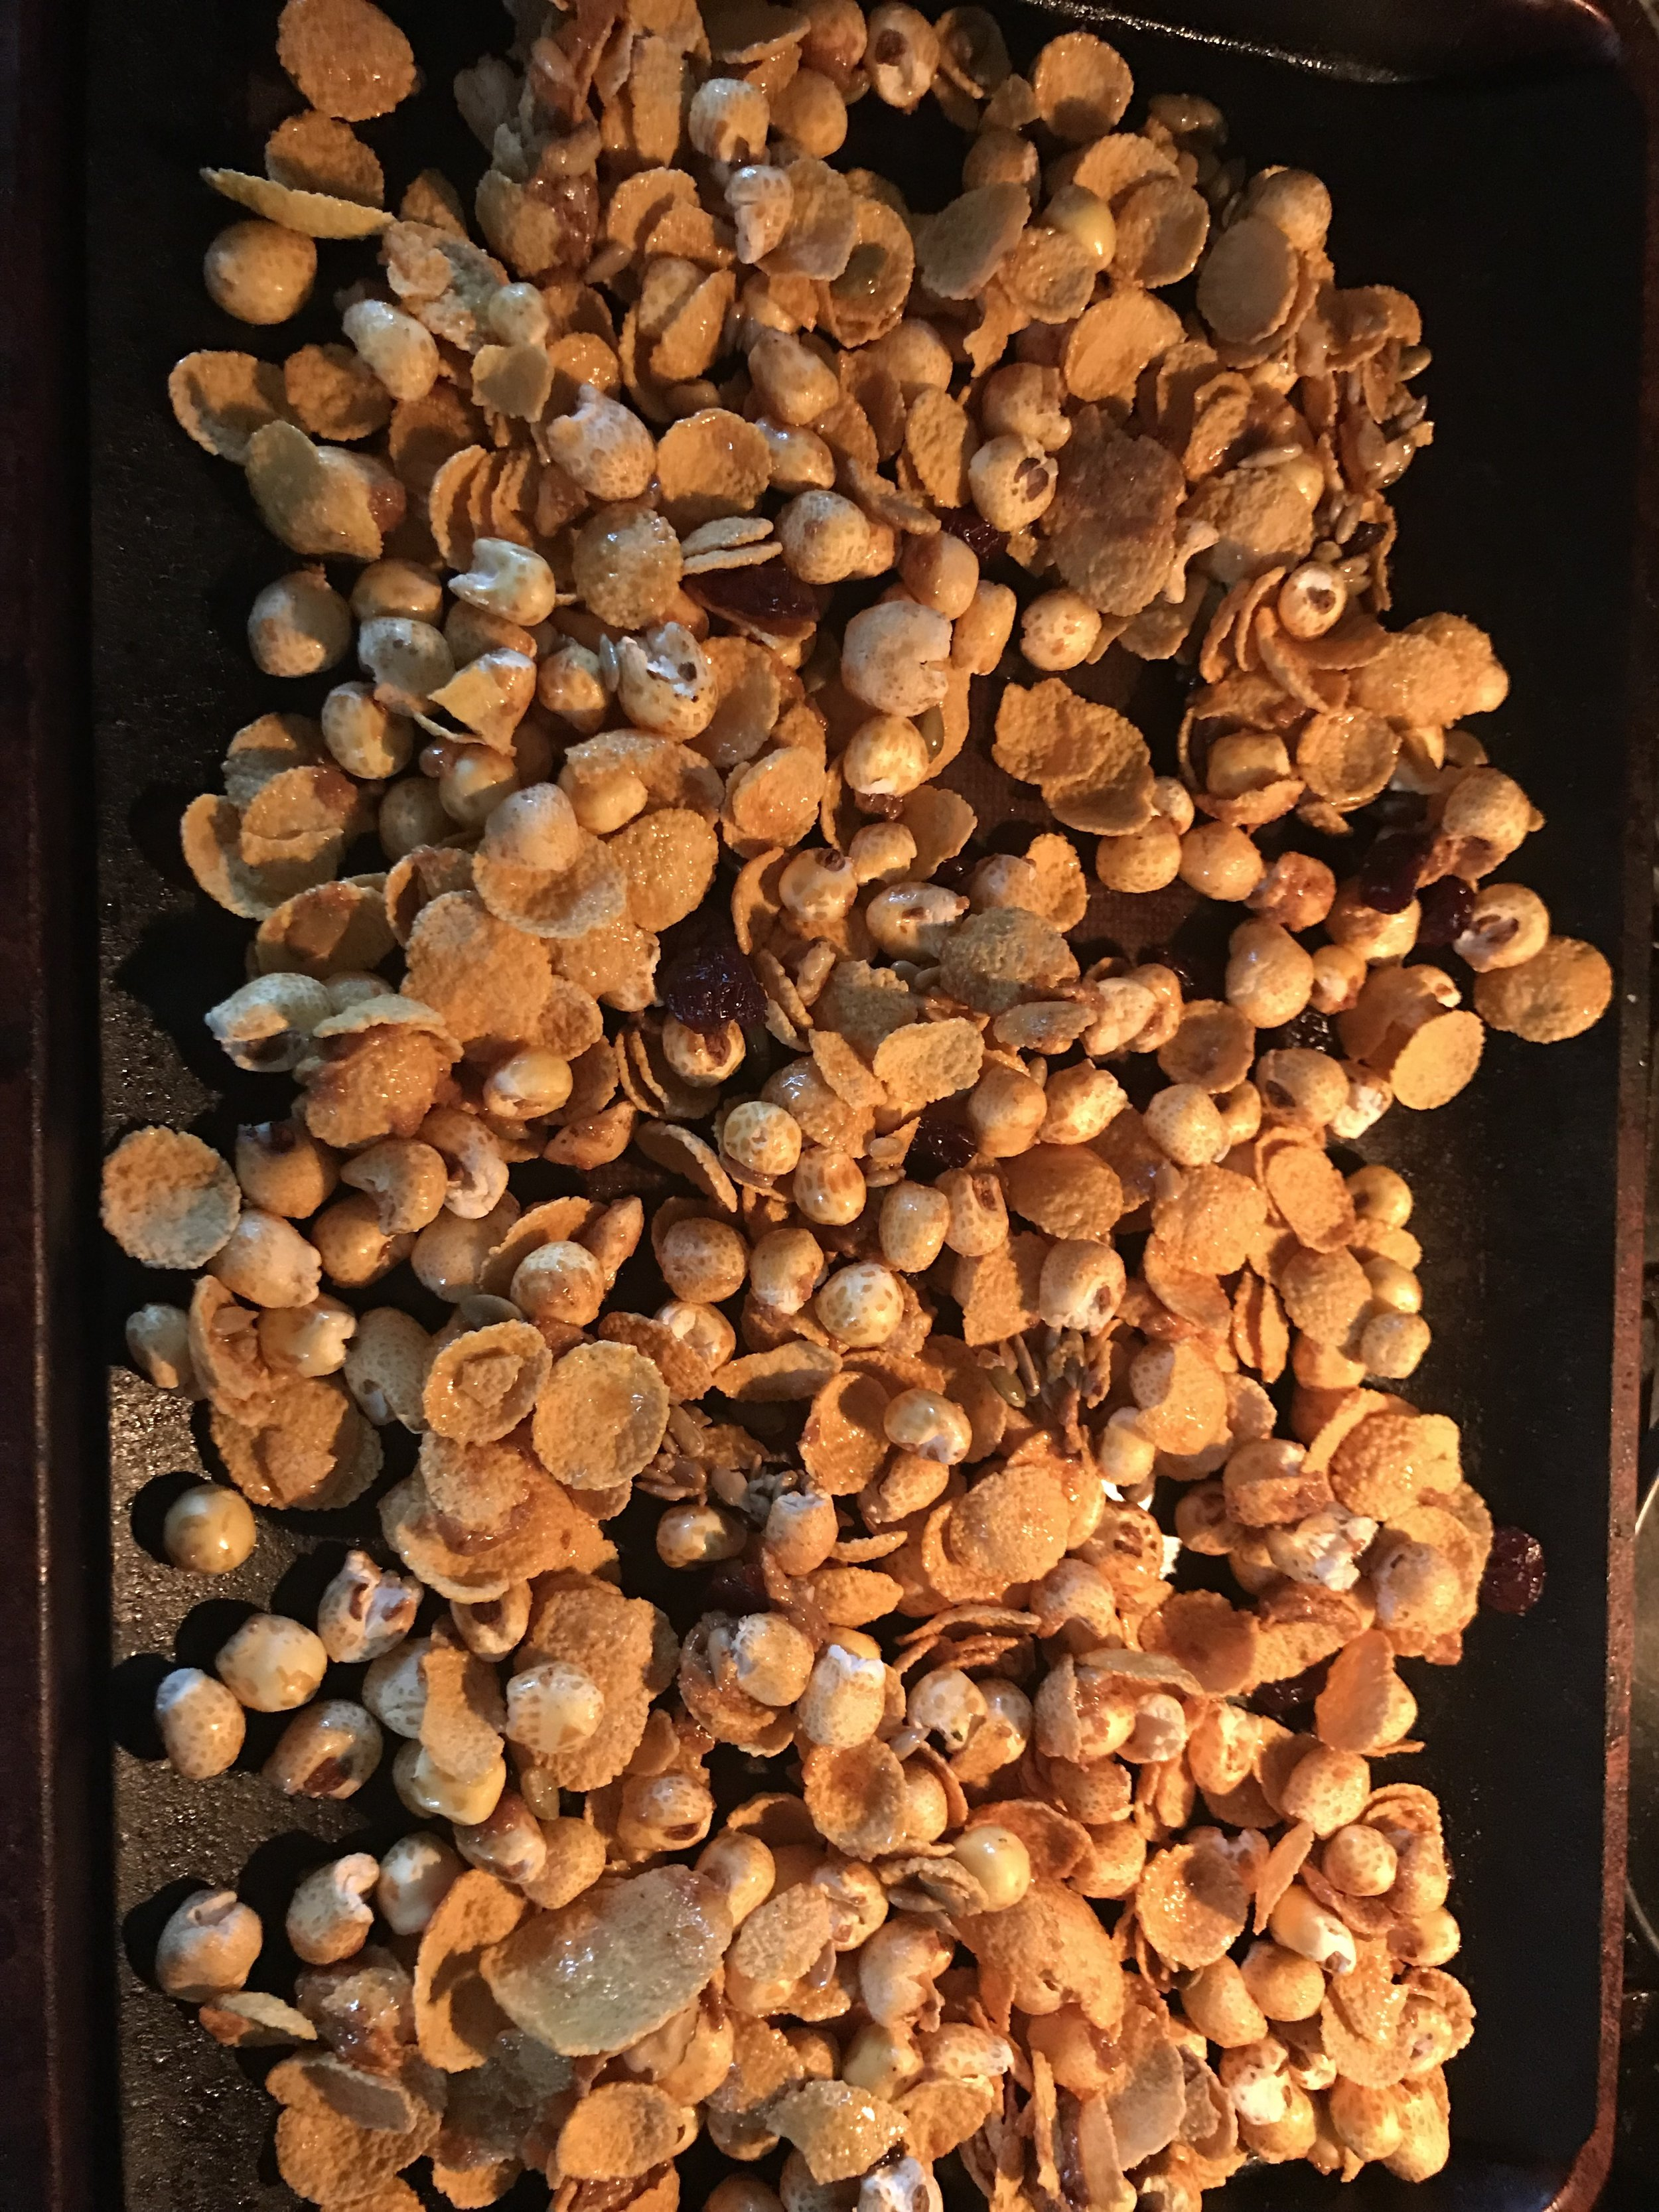 Homemade Corn Flake Granola: corn puffs, corn flakes, almond butter, maple syrup, sunflower seeds, dried cherries, cinnamon. BAKE at 350 degrees for 15 minutes or until golden. -